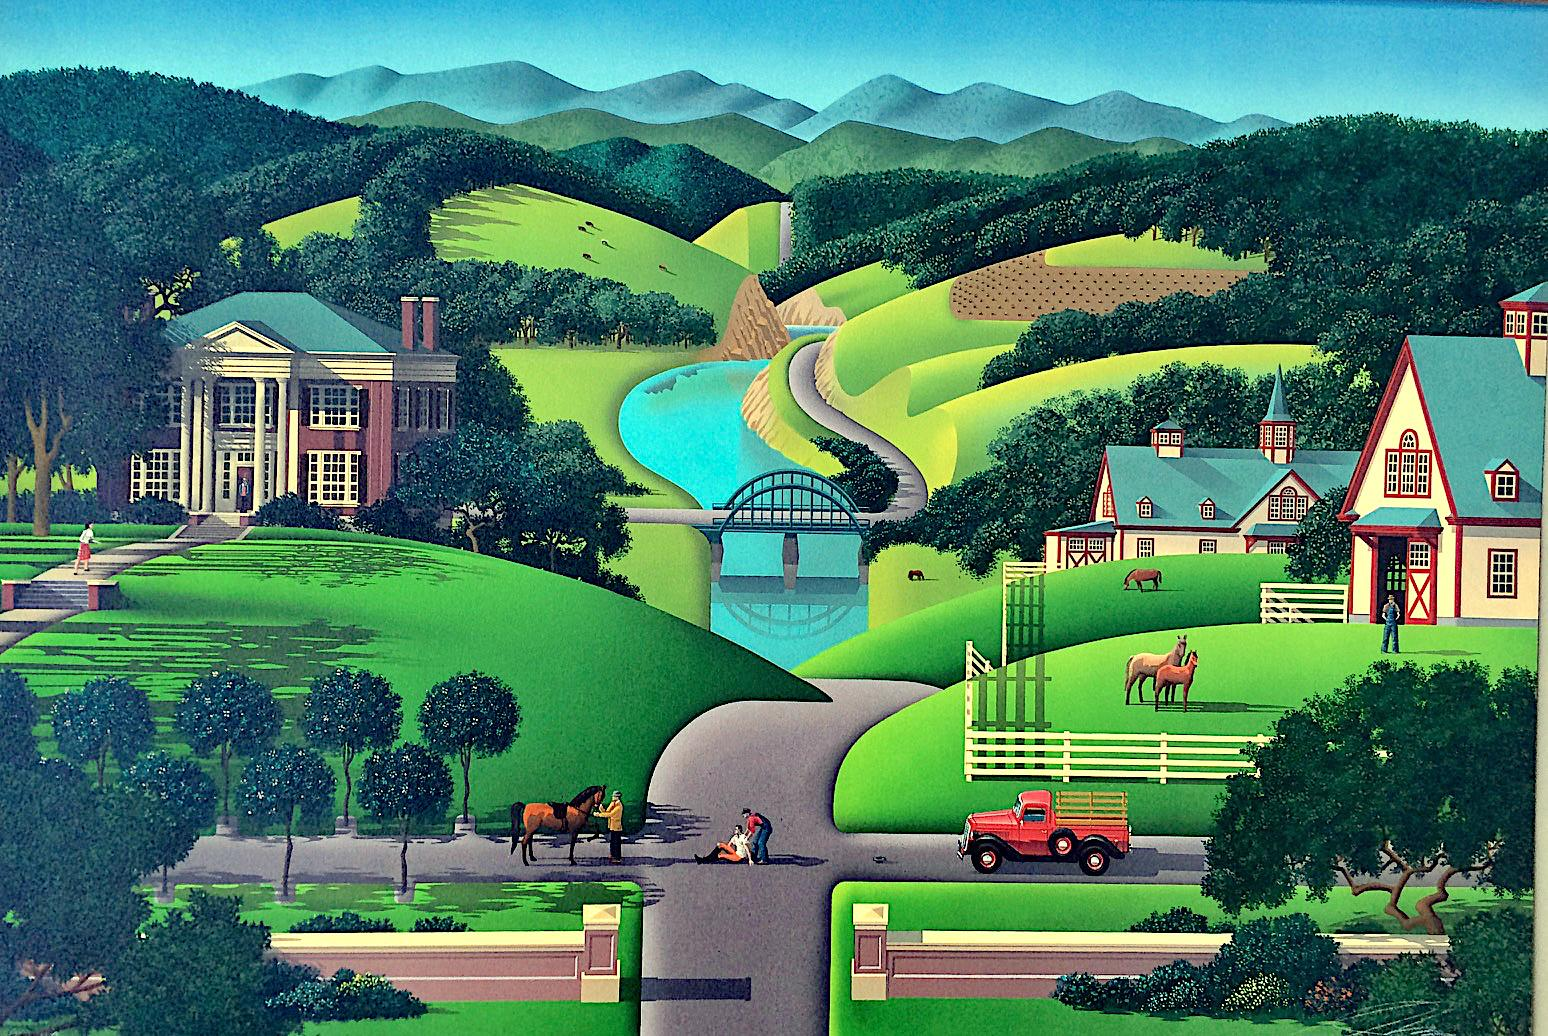 TROUBLE AT WALNUT RIDGE Signed Lithograph, Farm Country, Green Hills, Horses